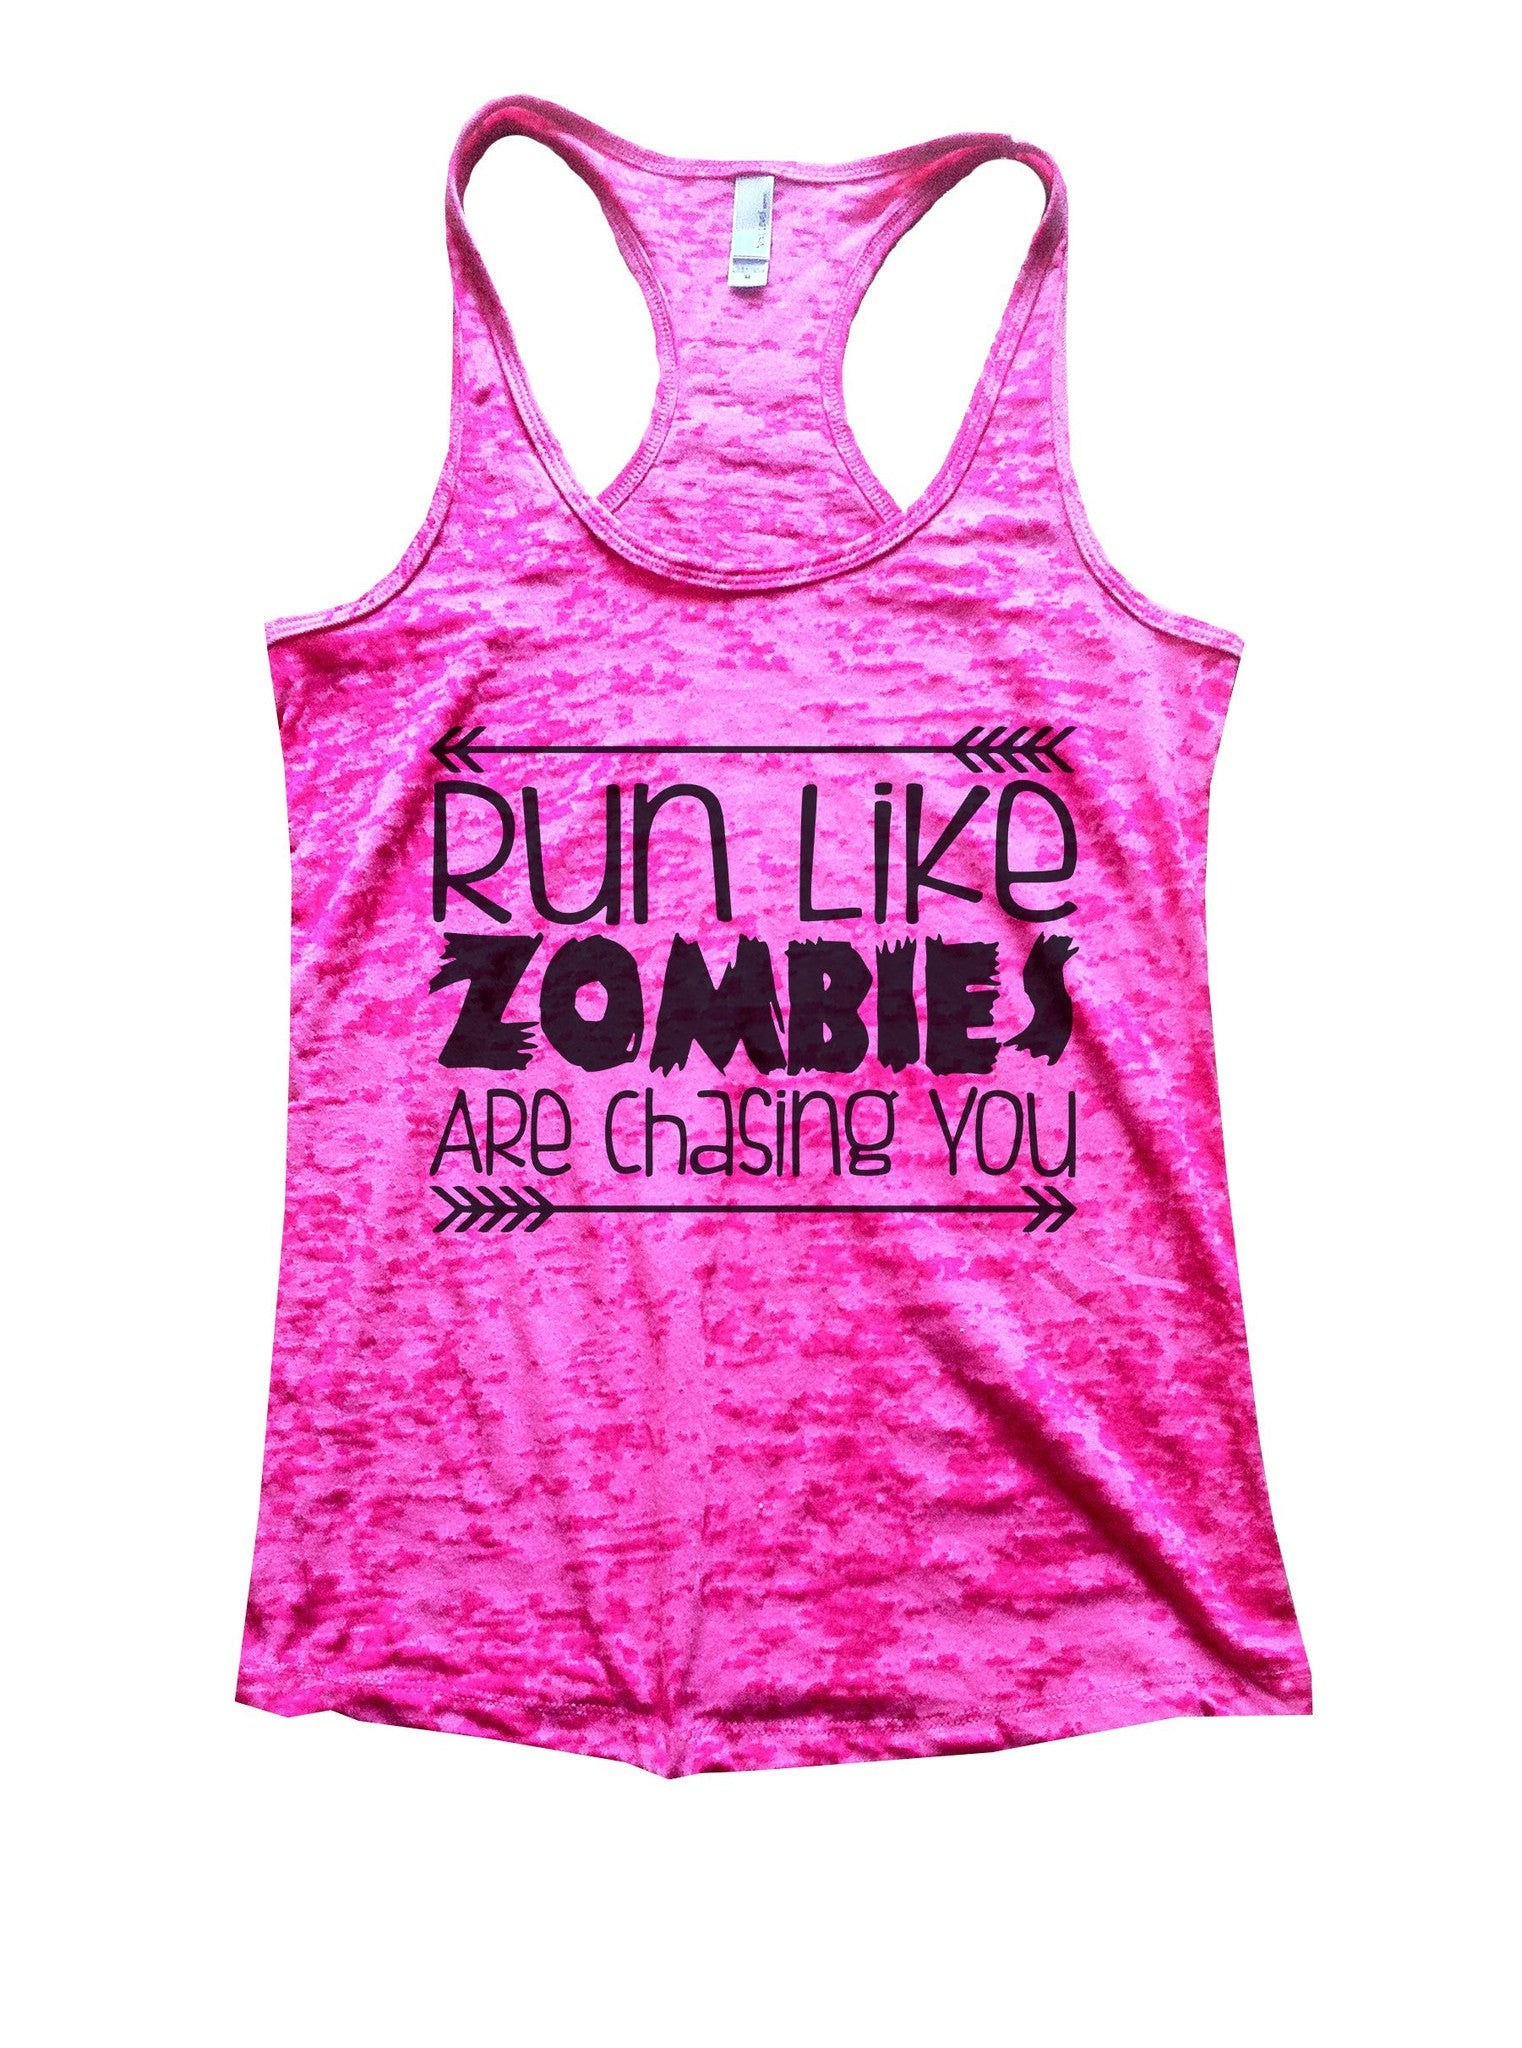 Run Like Zombies Are Chasing You Burnout Tank Top By BurnoutTankTops.com - 837 - Funny Shirts Tank Tops Burnouts and Triblends  - 5